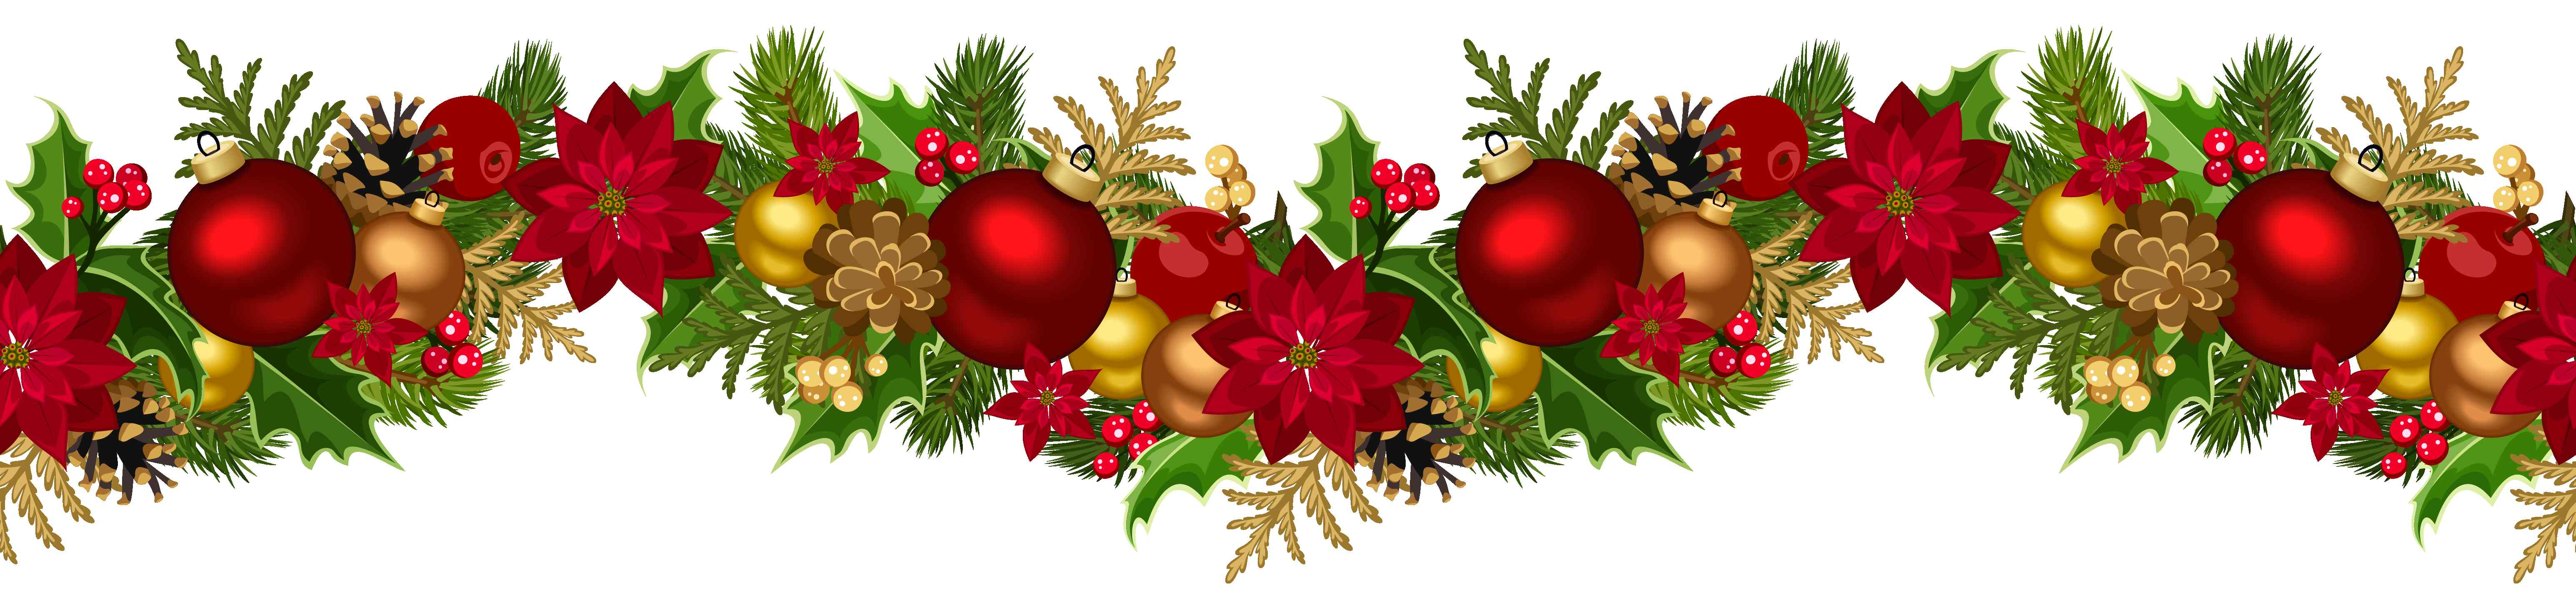 Christmas Garland Png - Christmas Garland Png (98+ images in Collection) Page 3